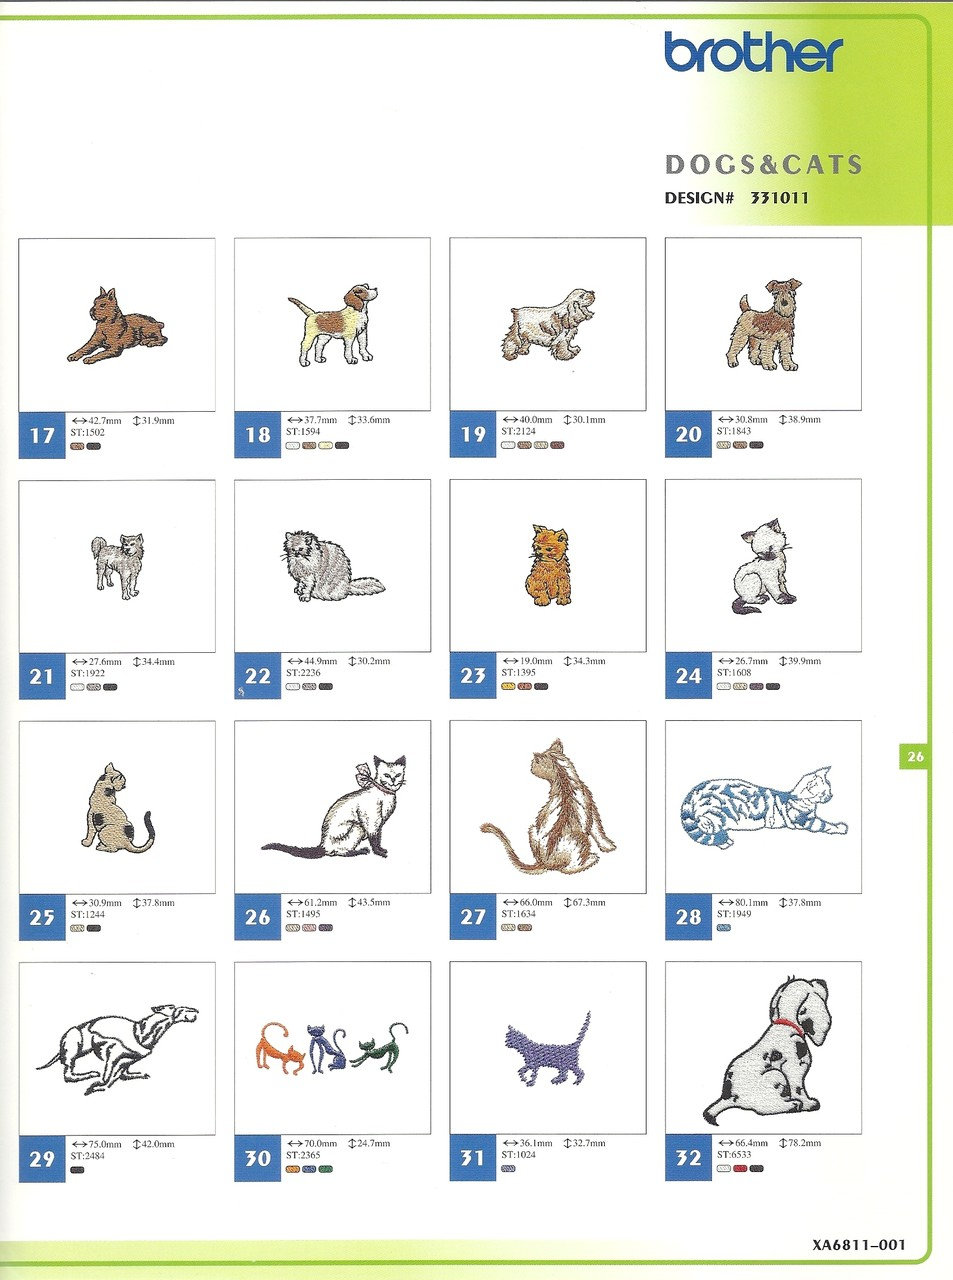 331011 Dogs & Cats